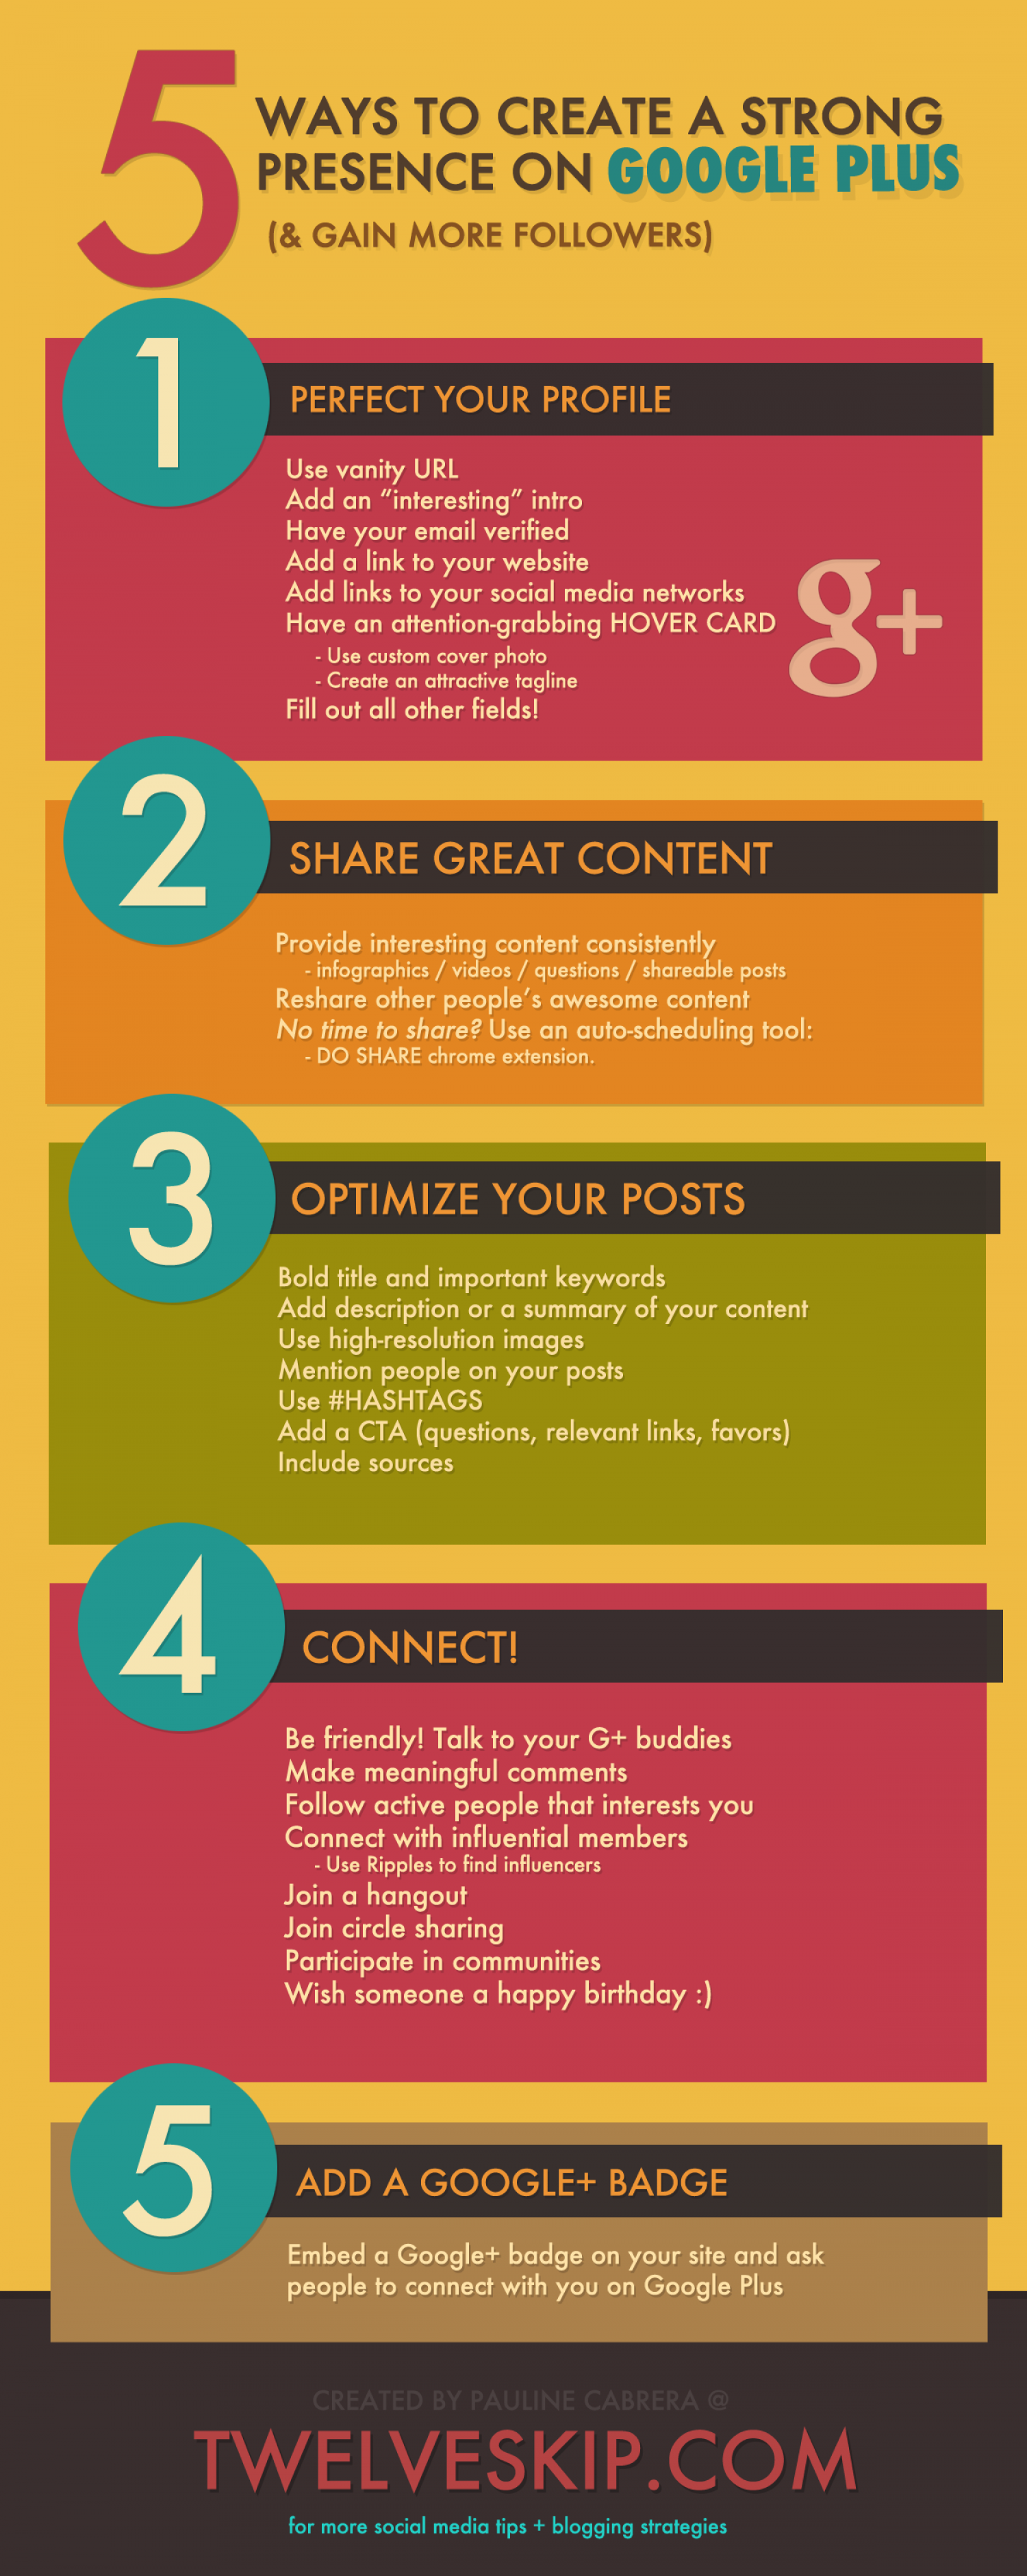 5 Ways To Create a Strong Presence on Google Plus (& Gain More Followers) Infographic